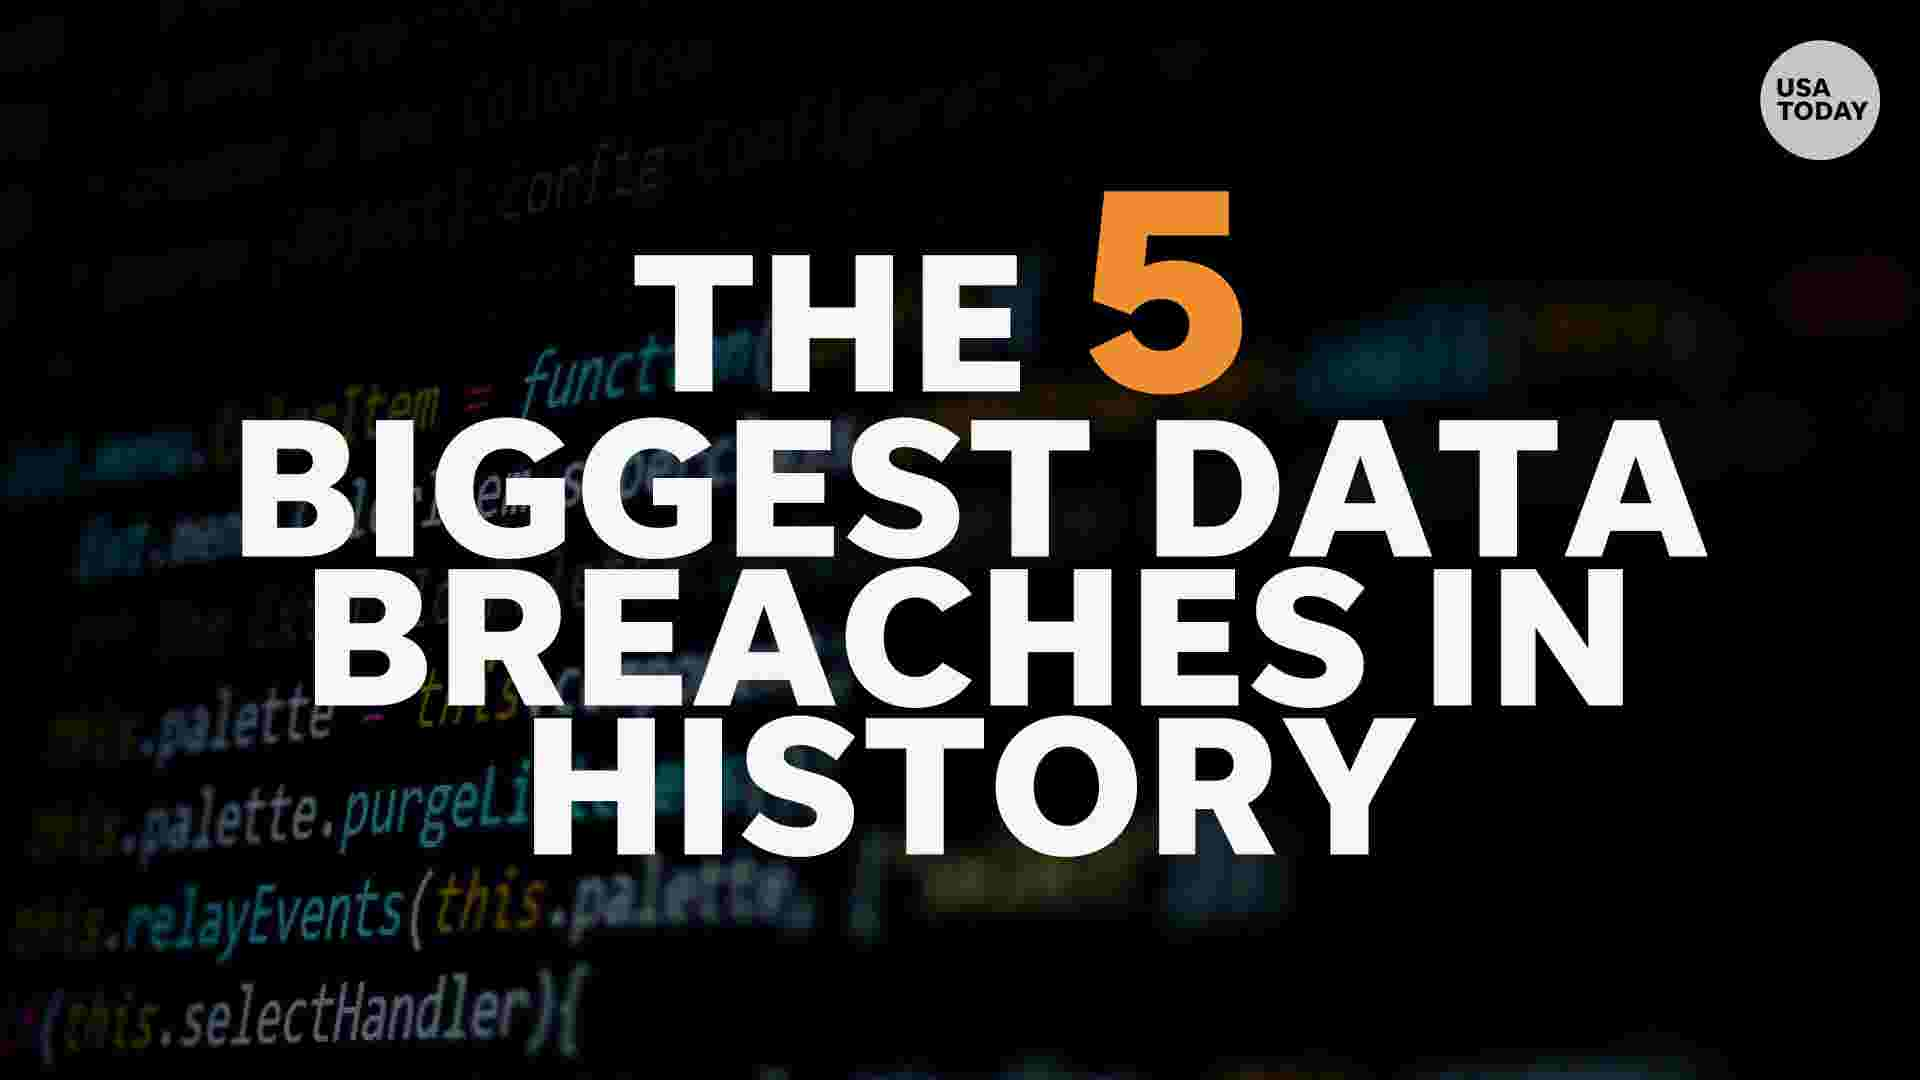 These are the 5 biggest data breaches in history